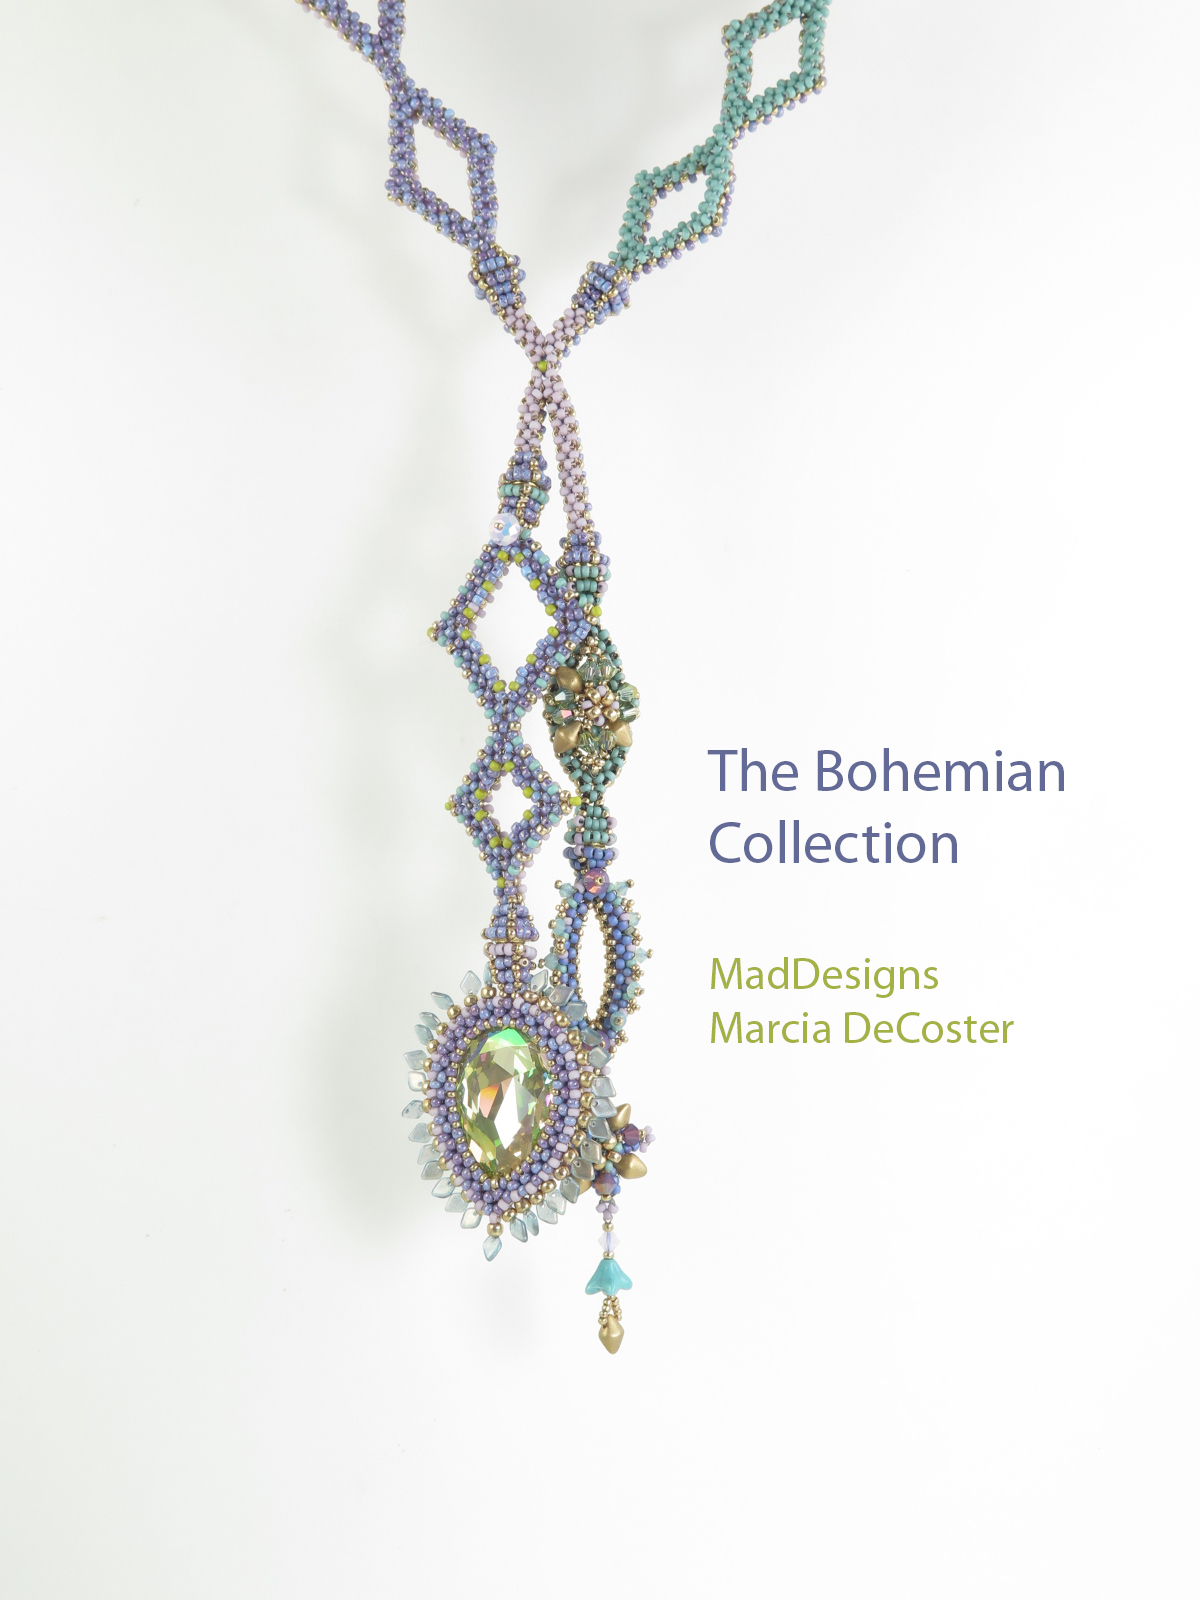 MadDesigns: The Bohemian Collection